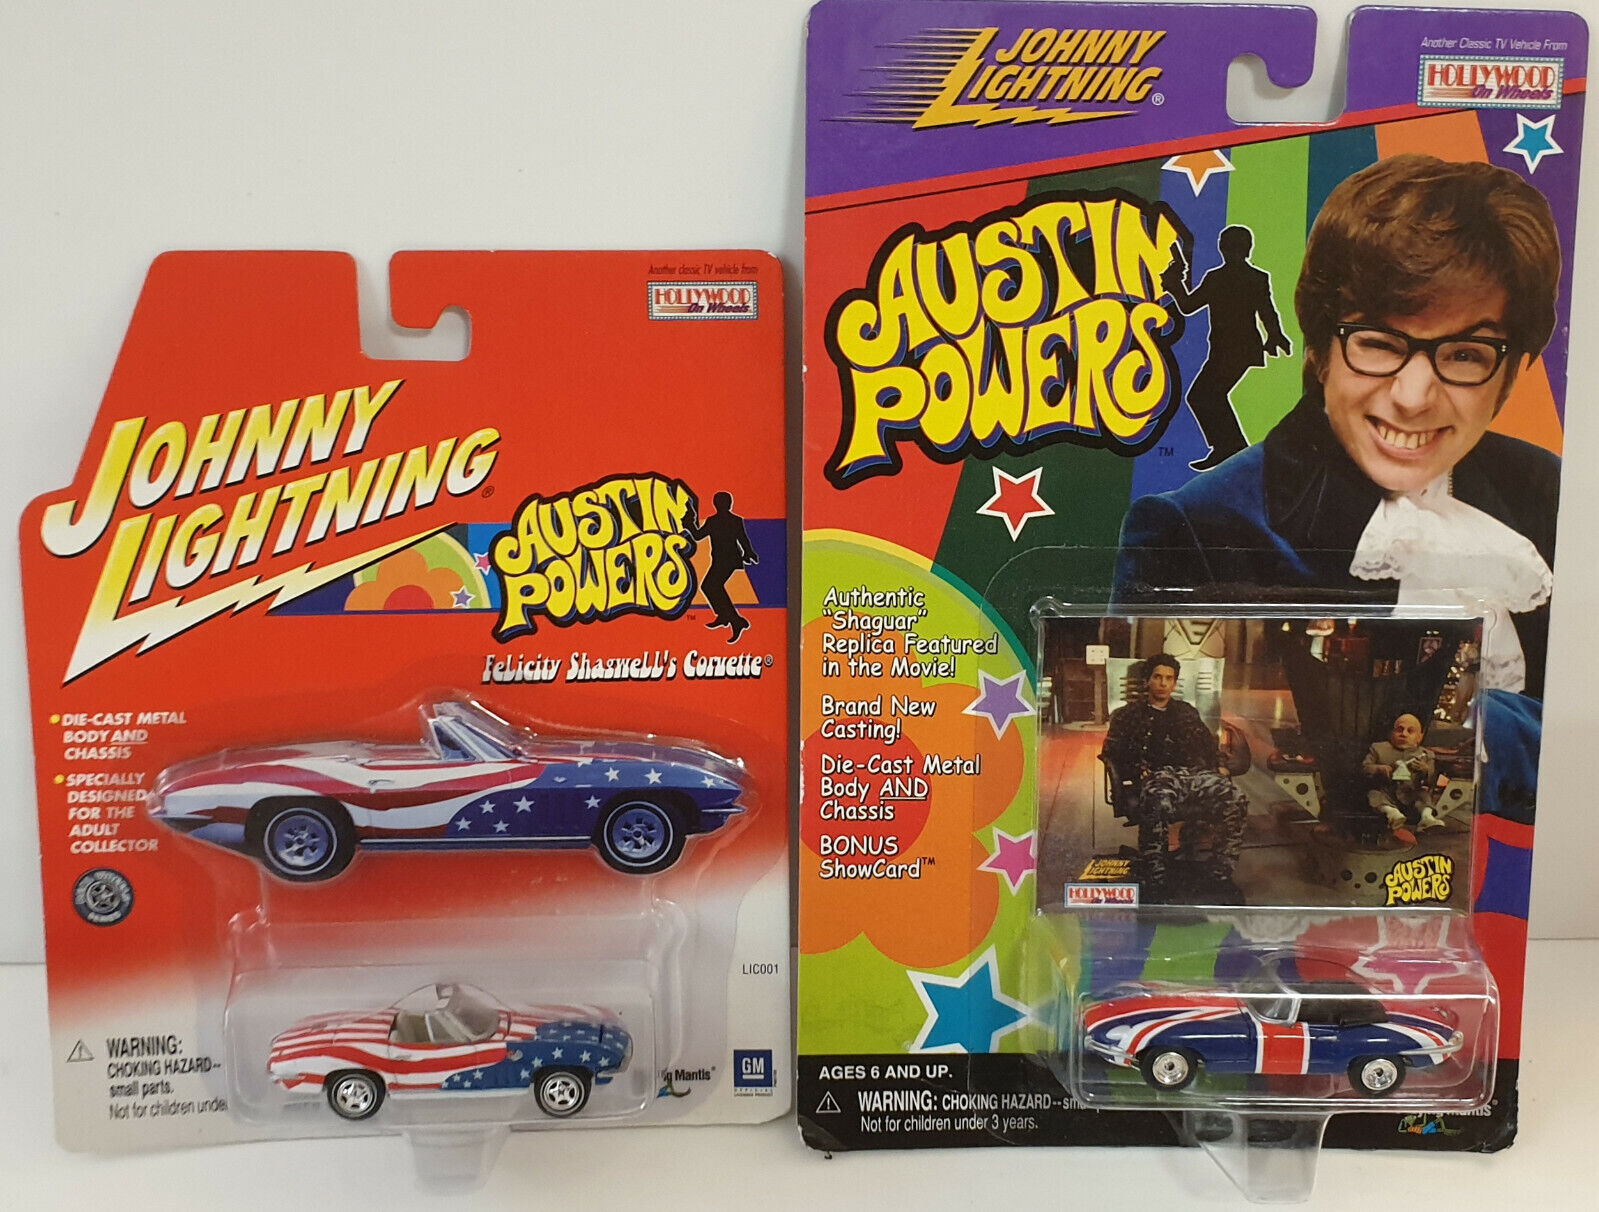 AUSTIN POWERS   FELICTY SHAGWELL'S CORVETTE & AUSTIN POWERS SHAGUAR SET